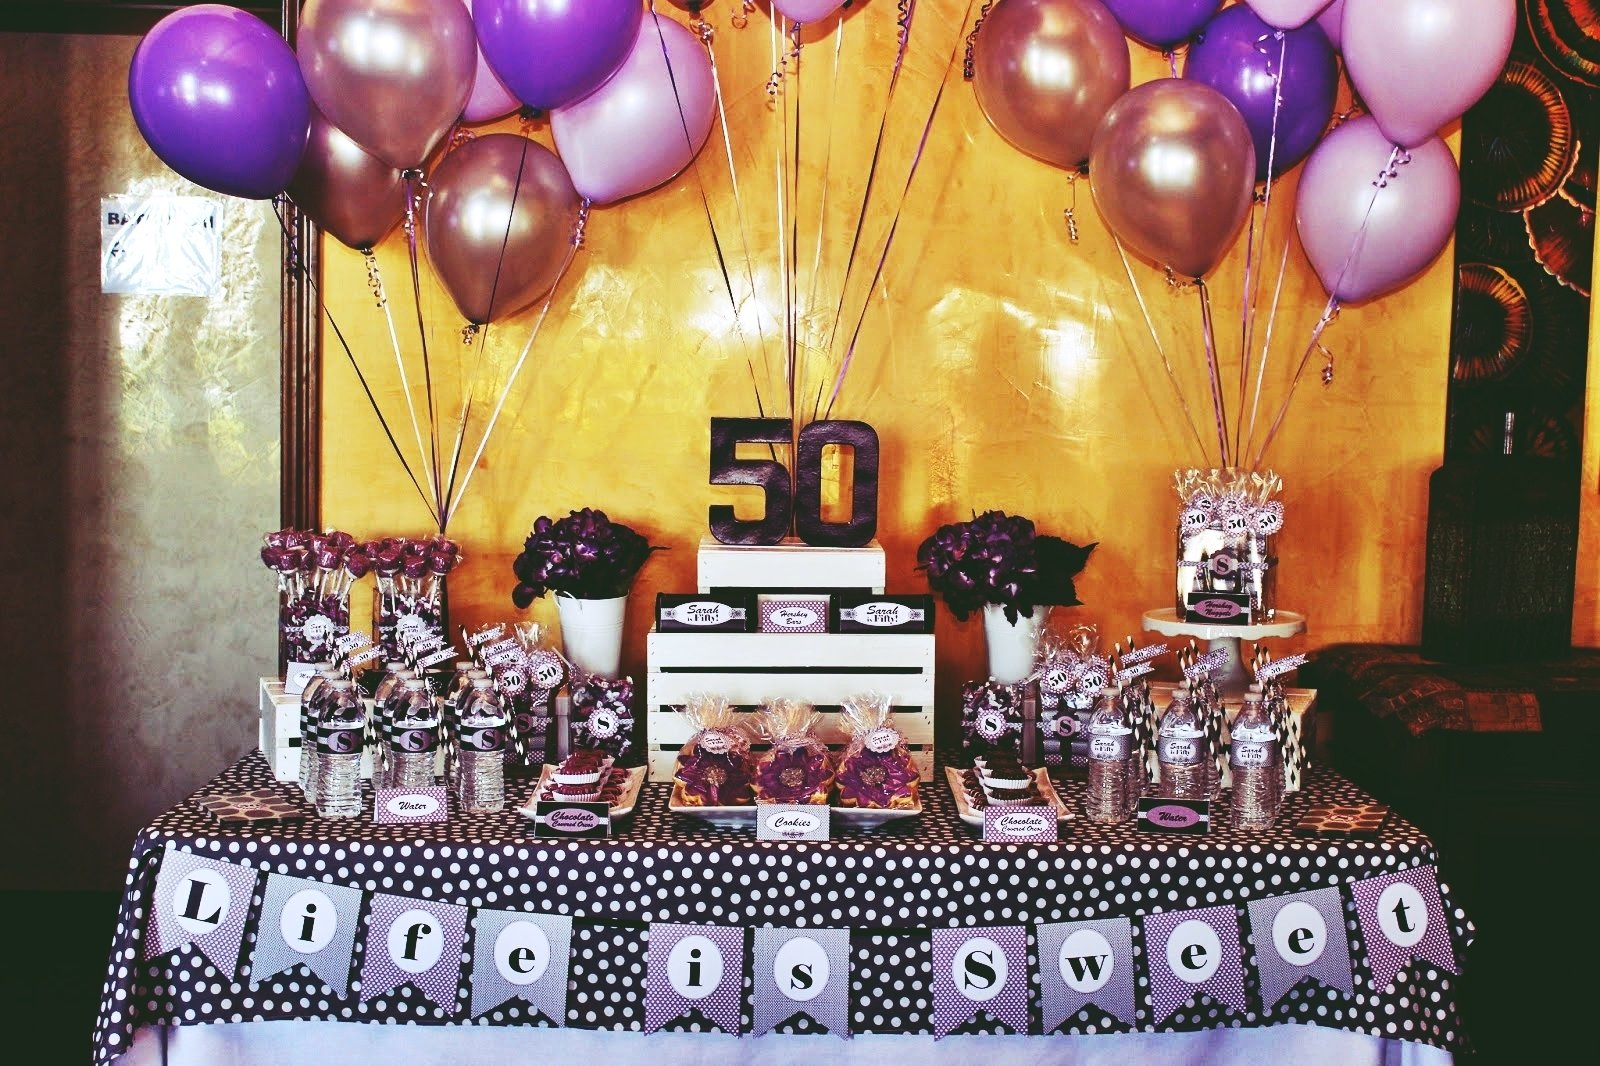 50th birthday party decorations you can look birthday party ideas